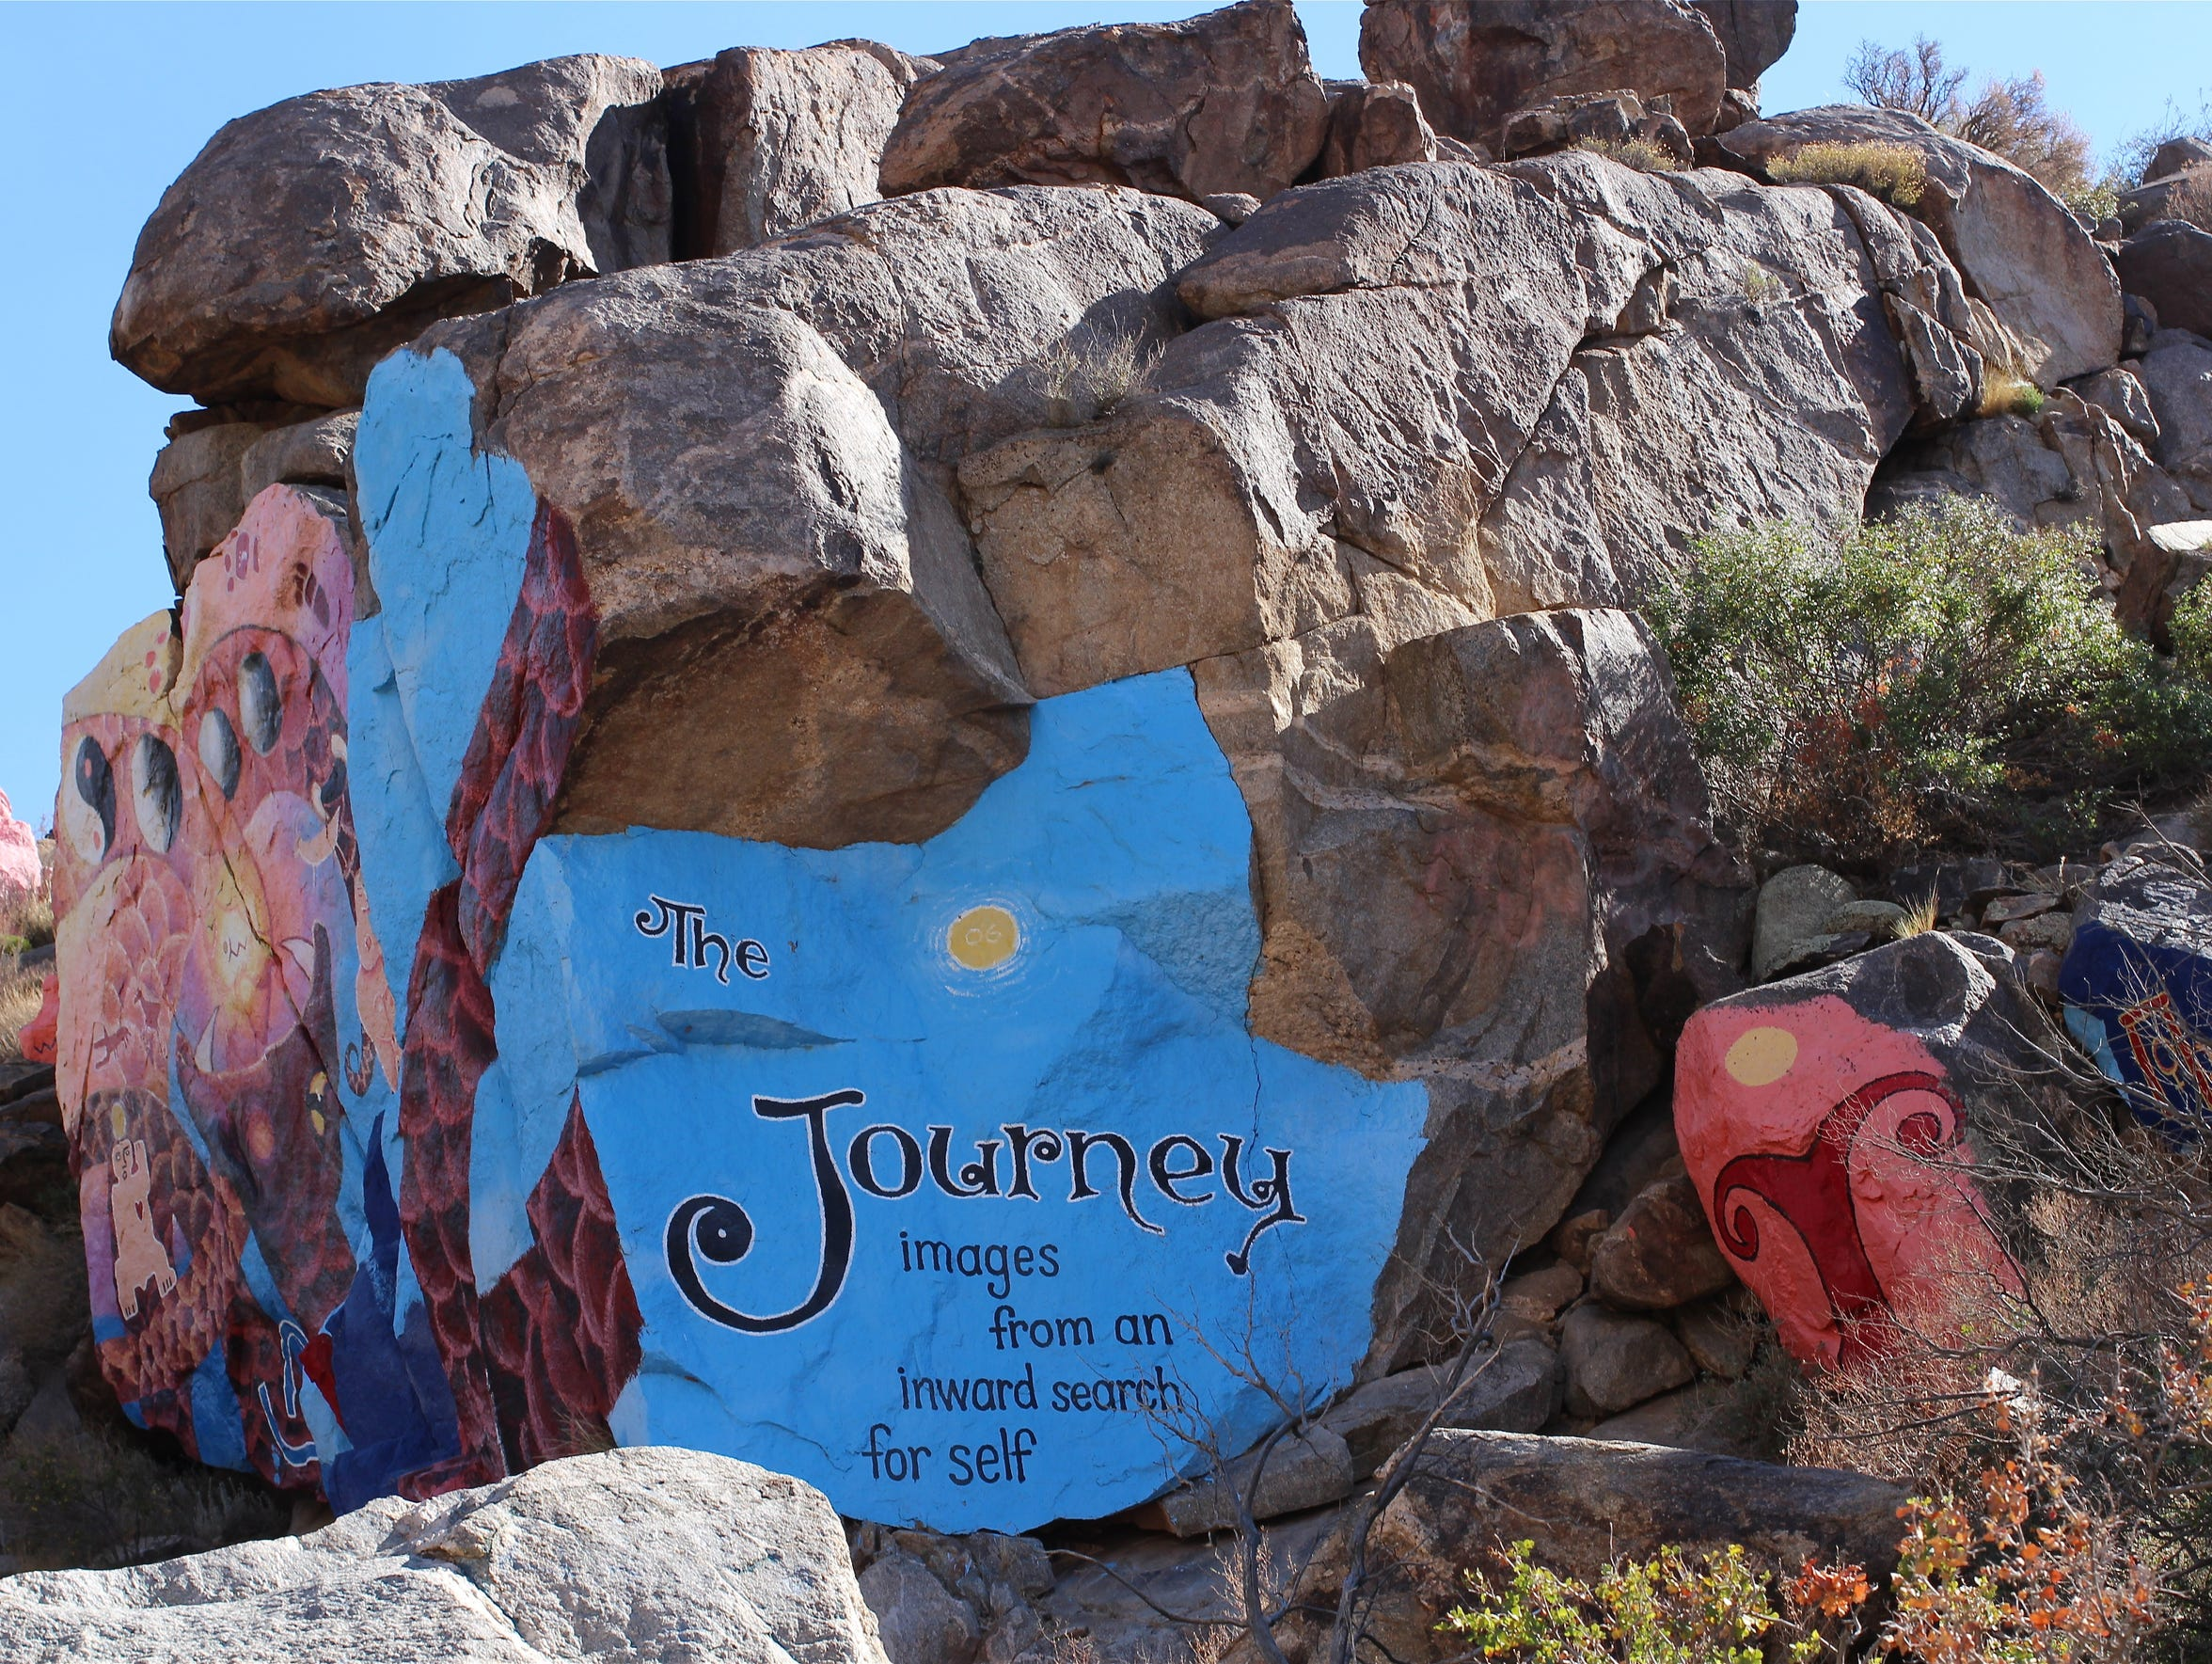 Roy Purcell's rock murals have kept the ghost town